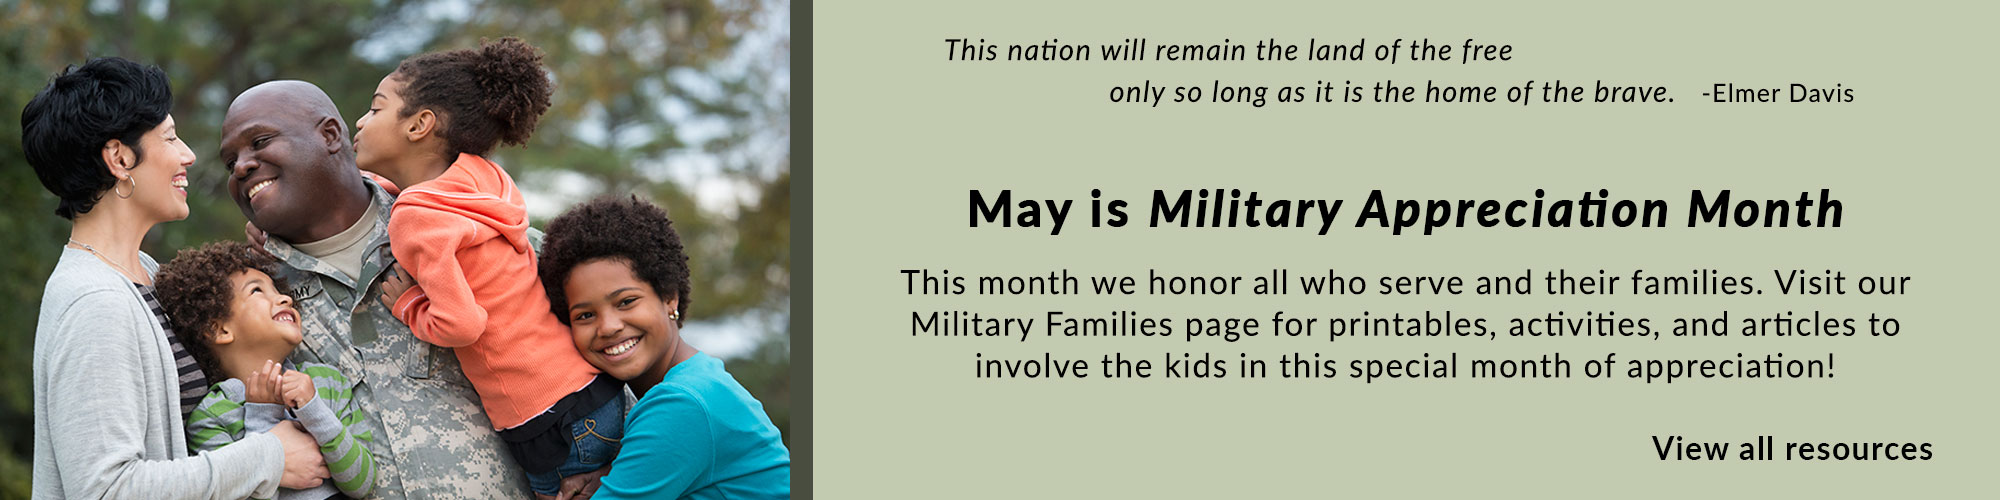 Military Appreciation Month - Military Family